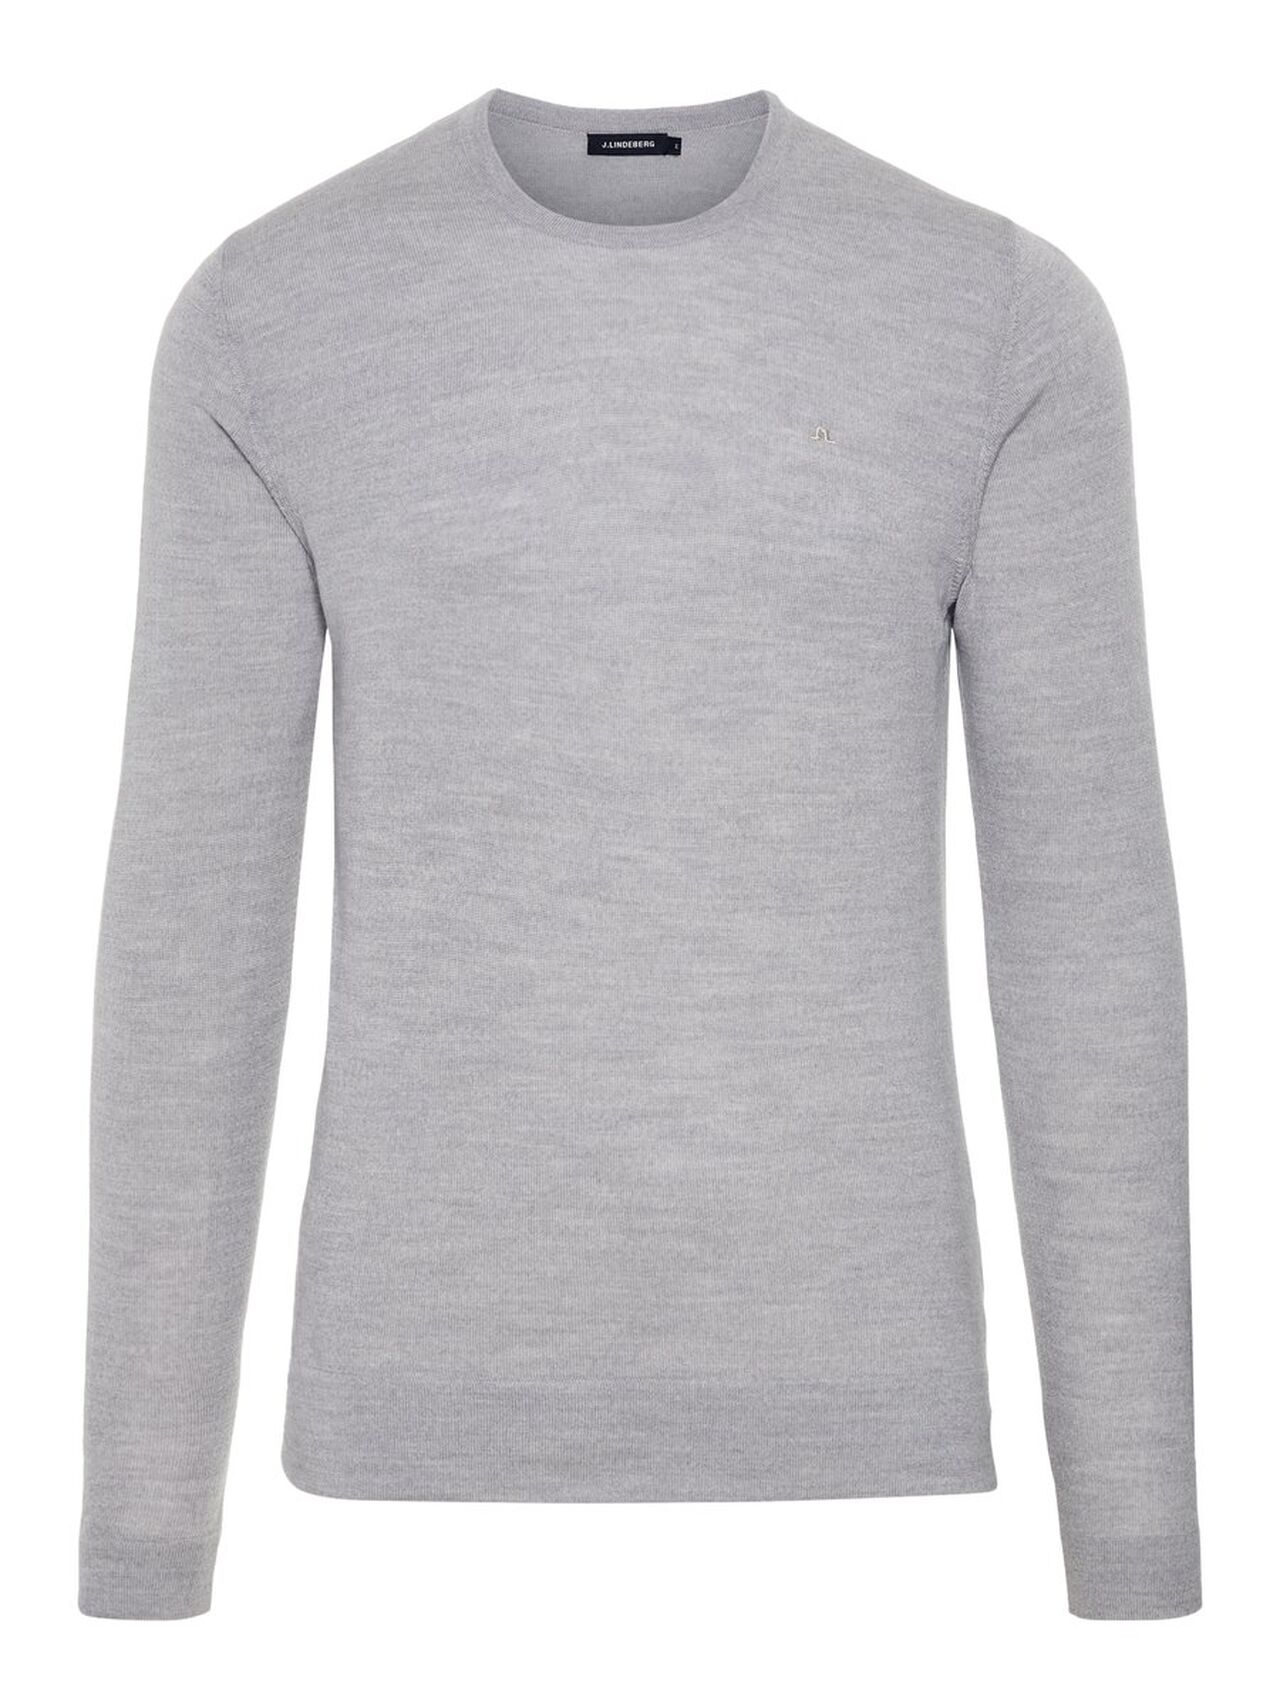 J.LINDEBERG Newman C-neck Perfect Merino Sweater Man Grå